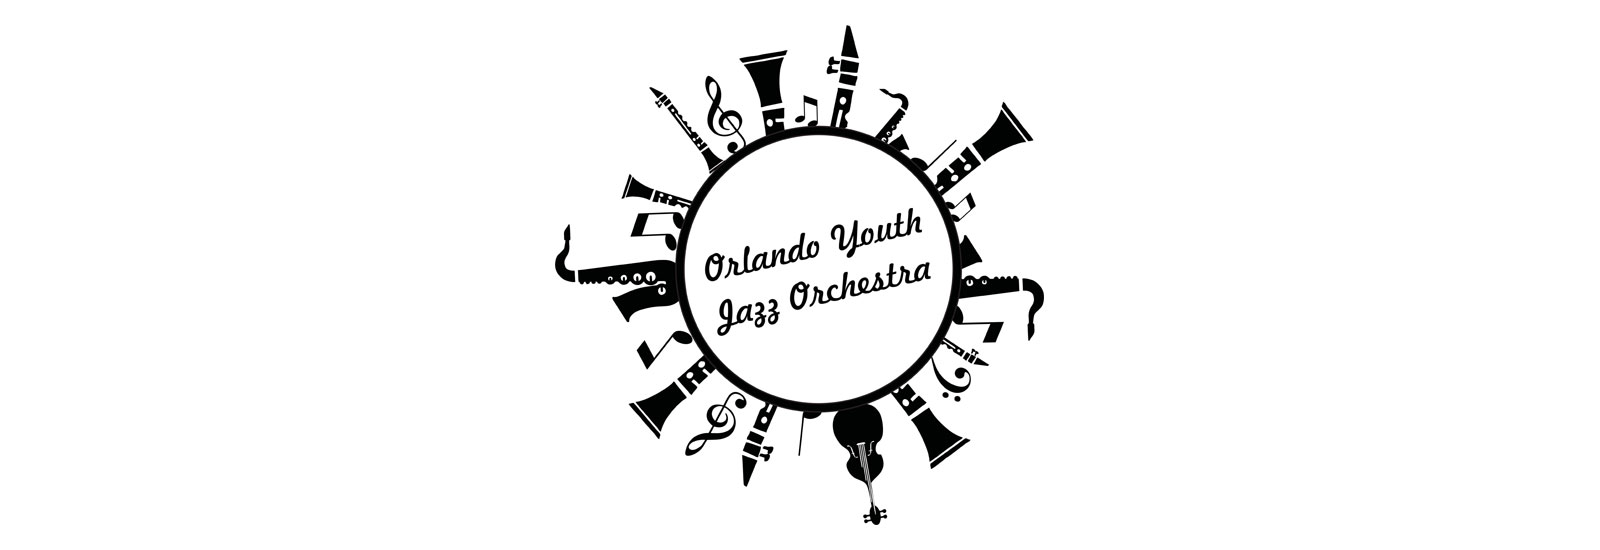 Orlando Youth Jazz Orchestra